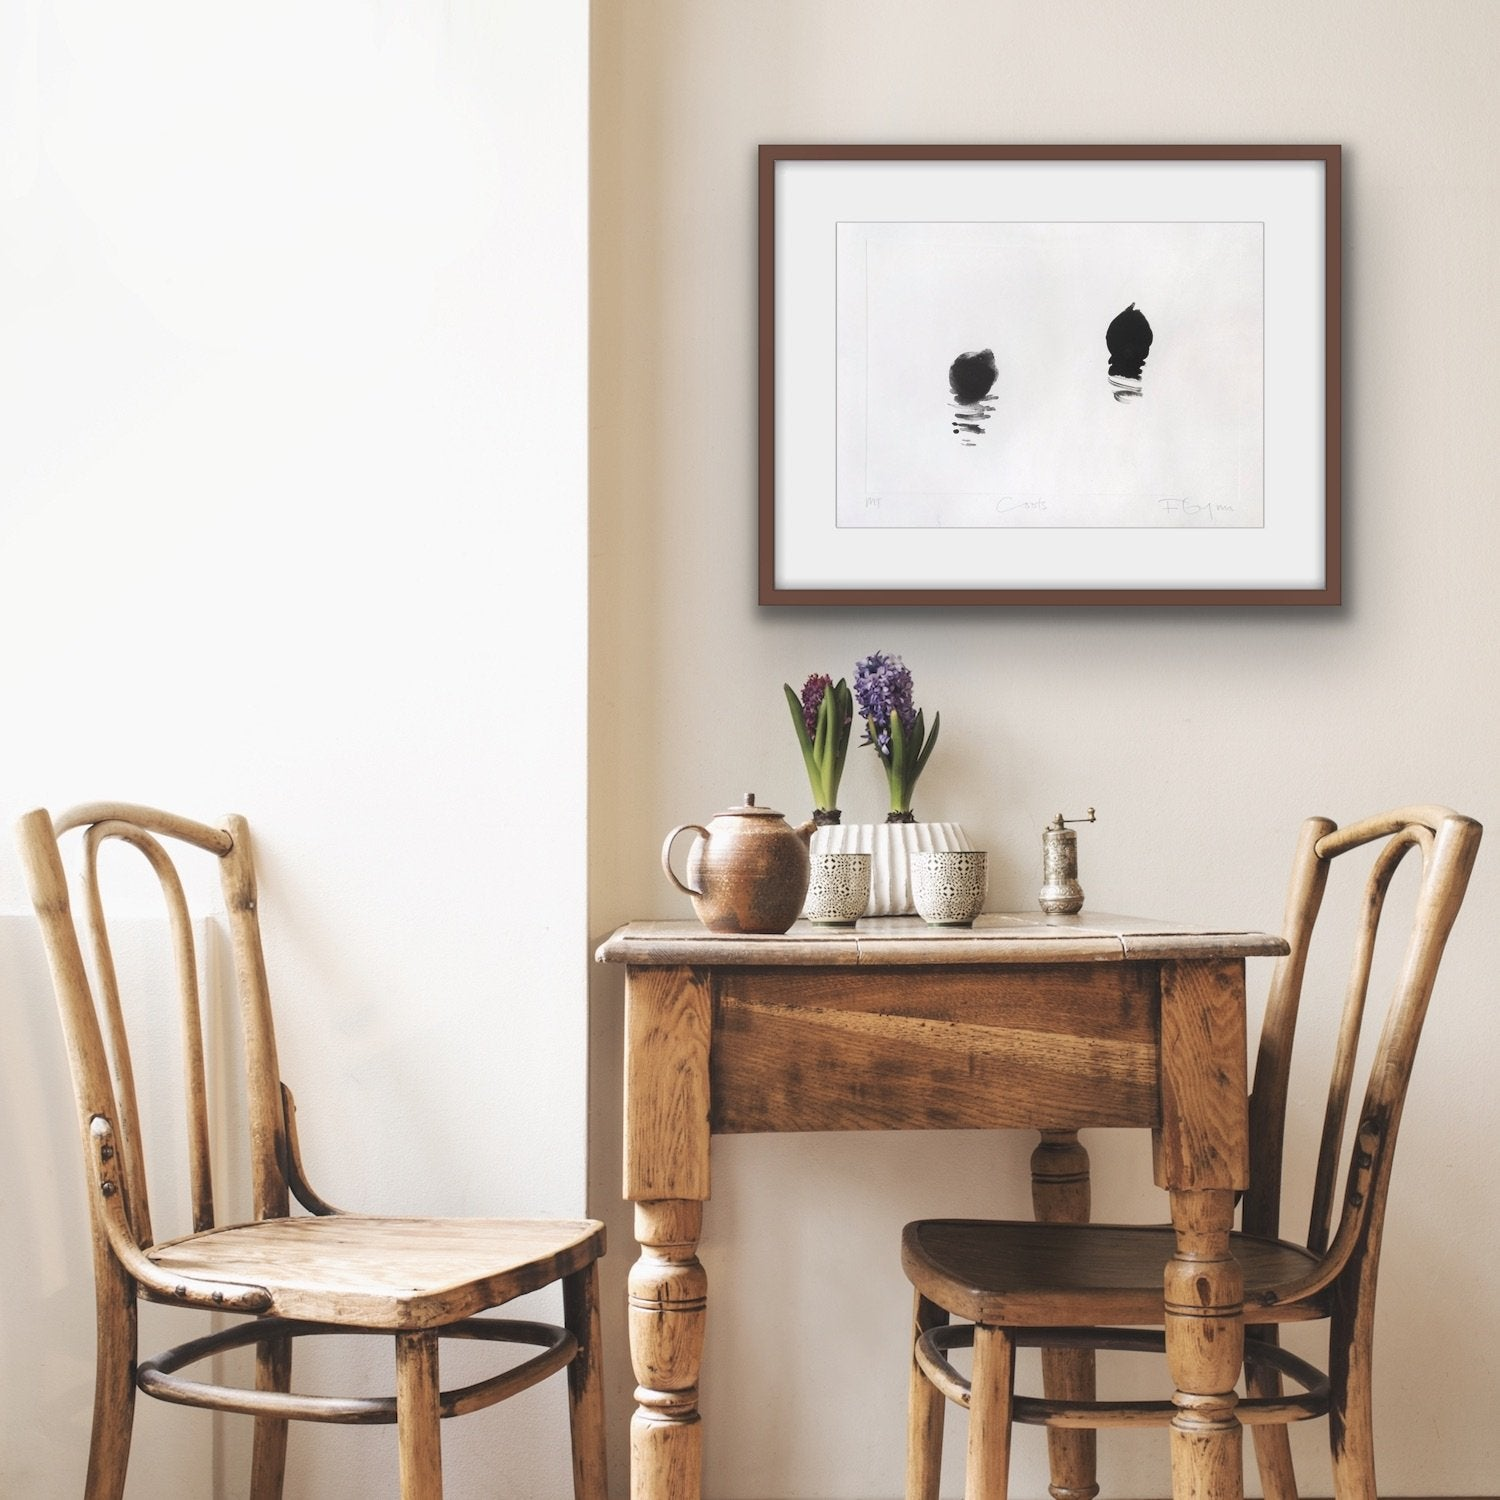 'Coots', a minimal monotype by contemporary, woman artist Frances Gynn, shown in situ